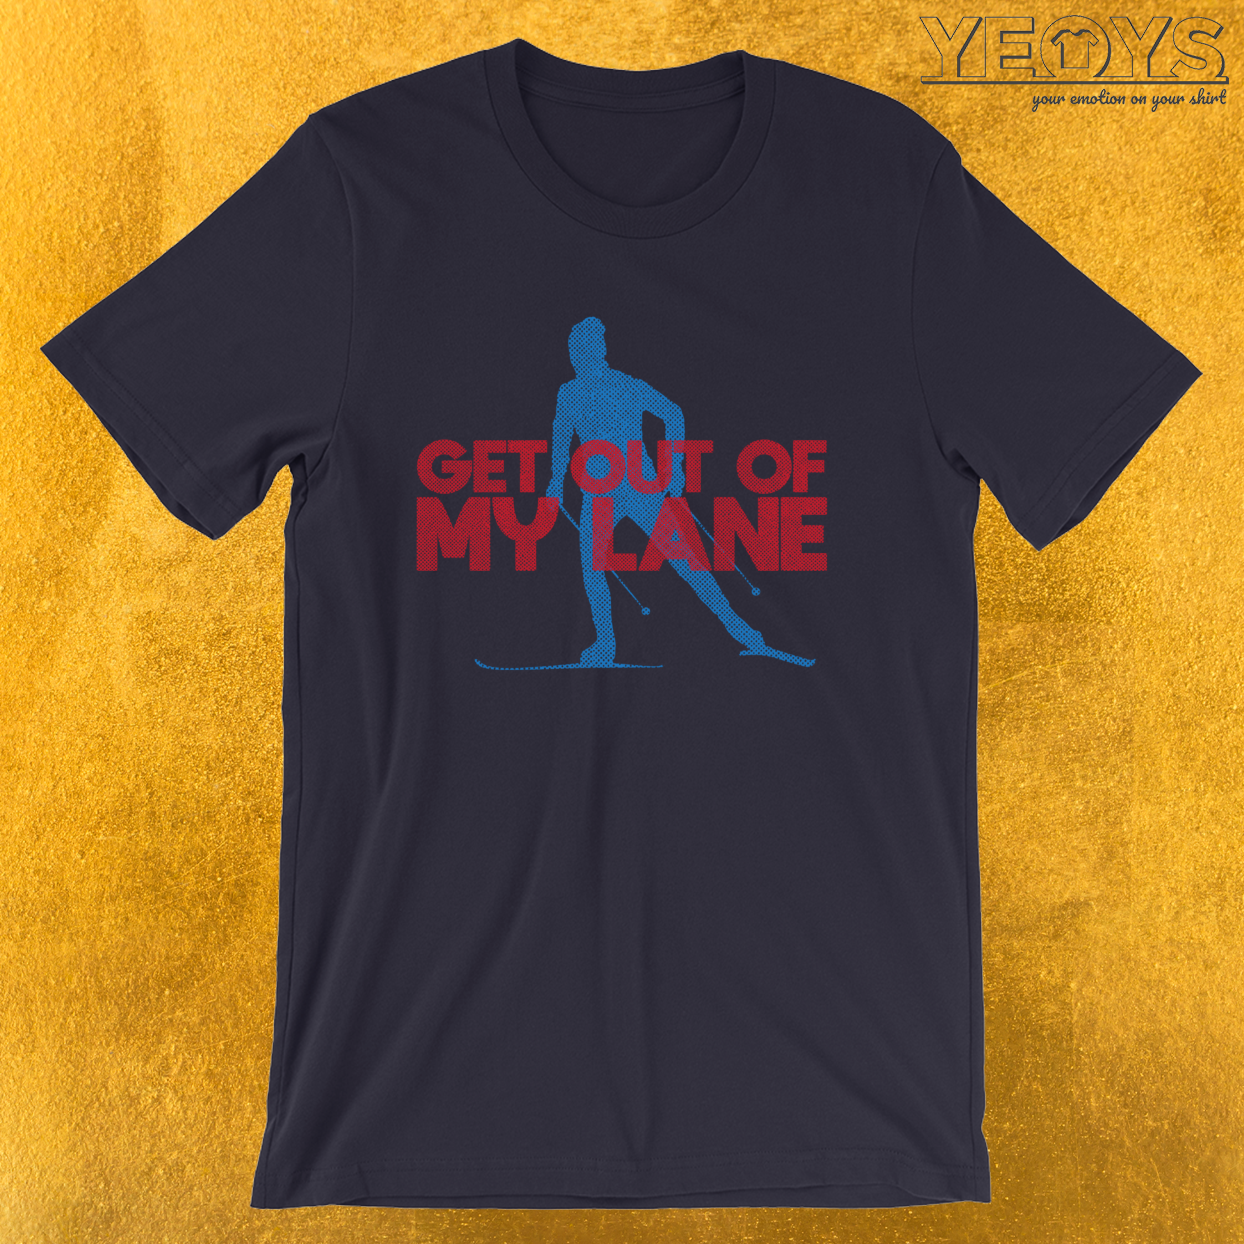 Get Out Of My Lane – Cross Country Skiing Tee